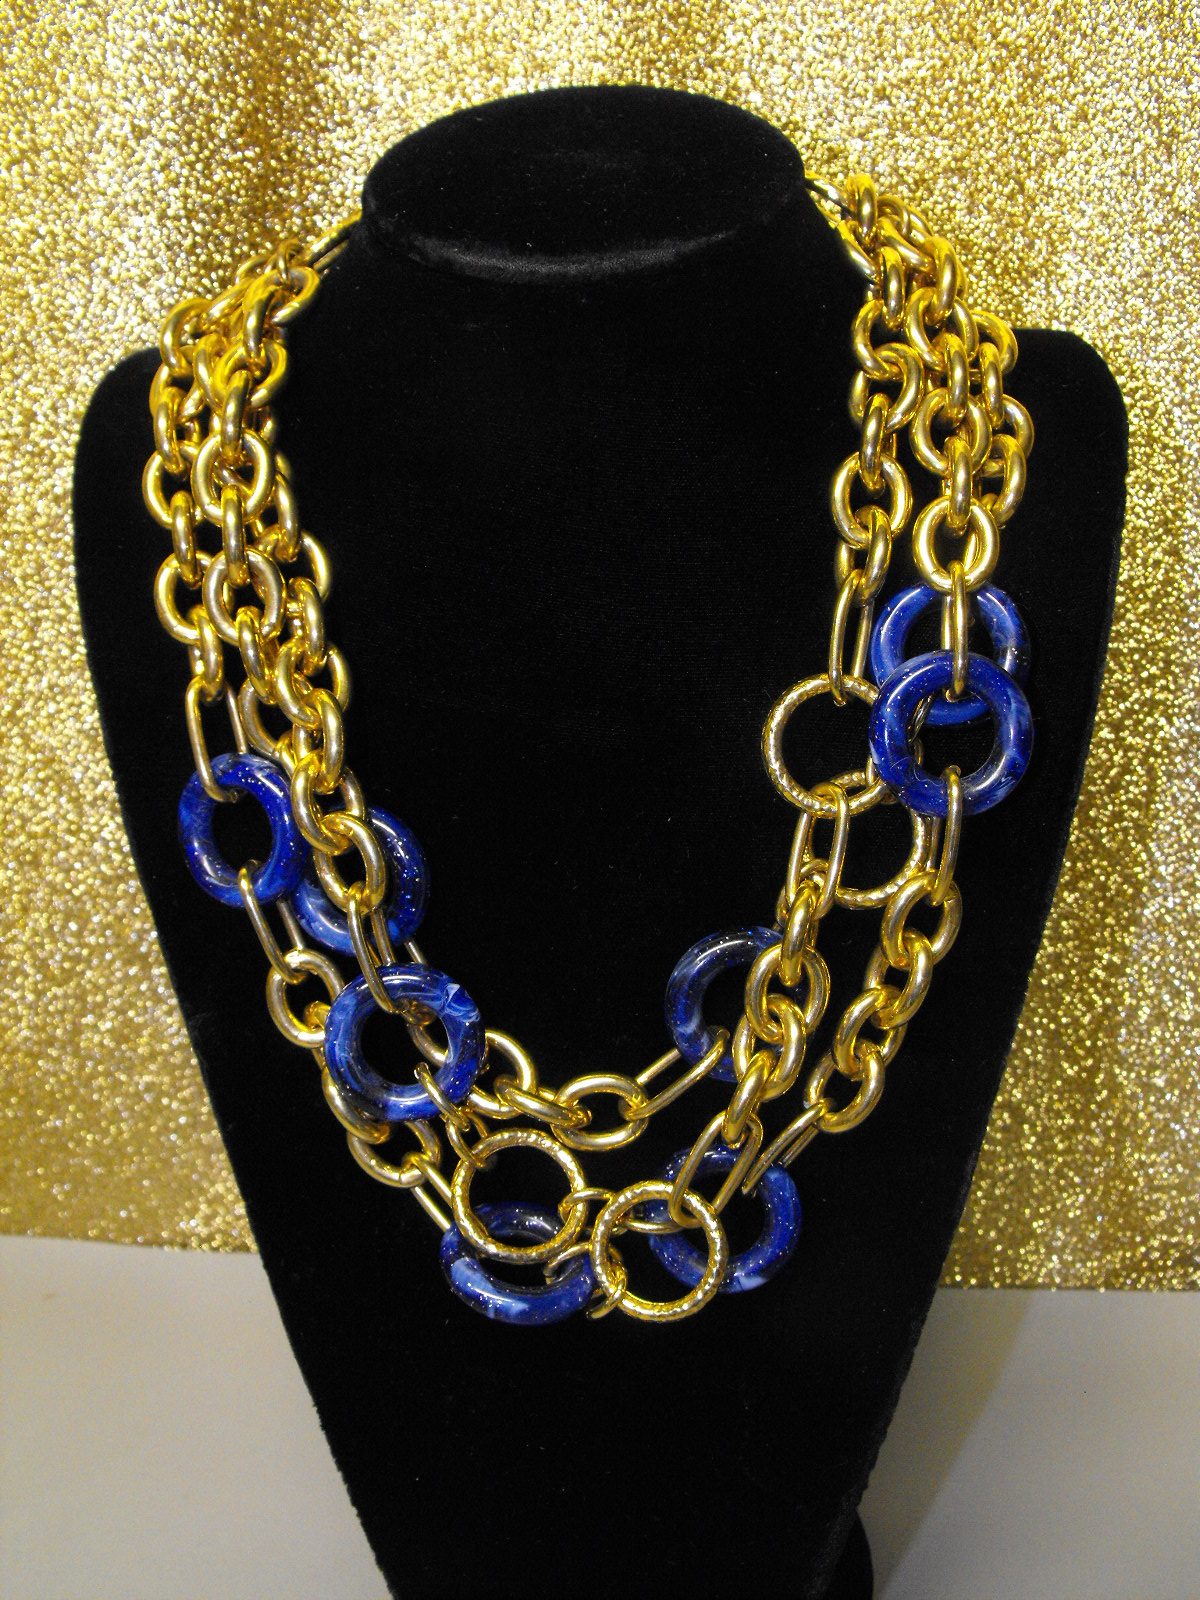 Triple Strand Chain Necklace With Blue Ring Accents